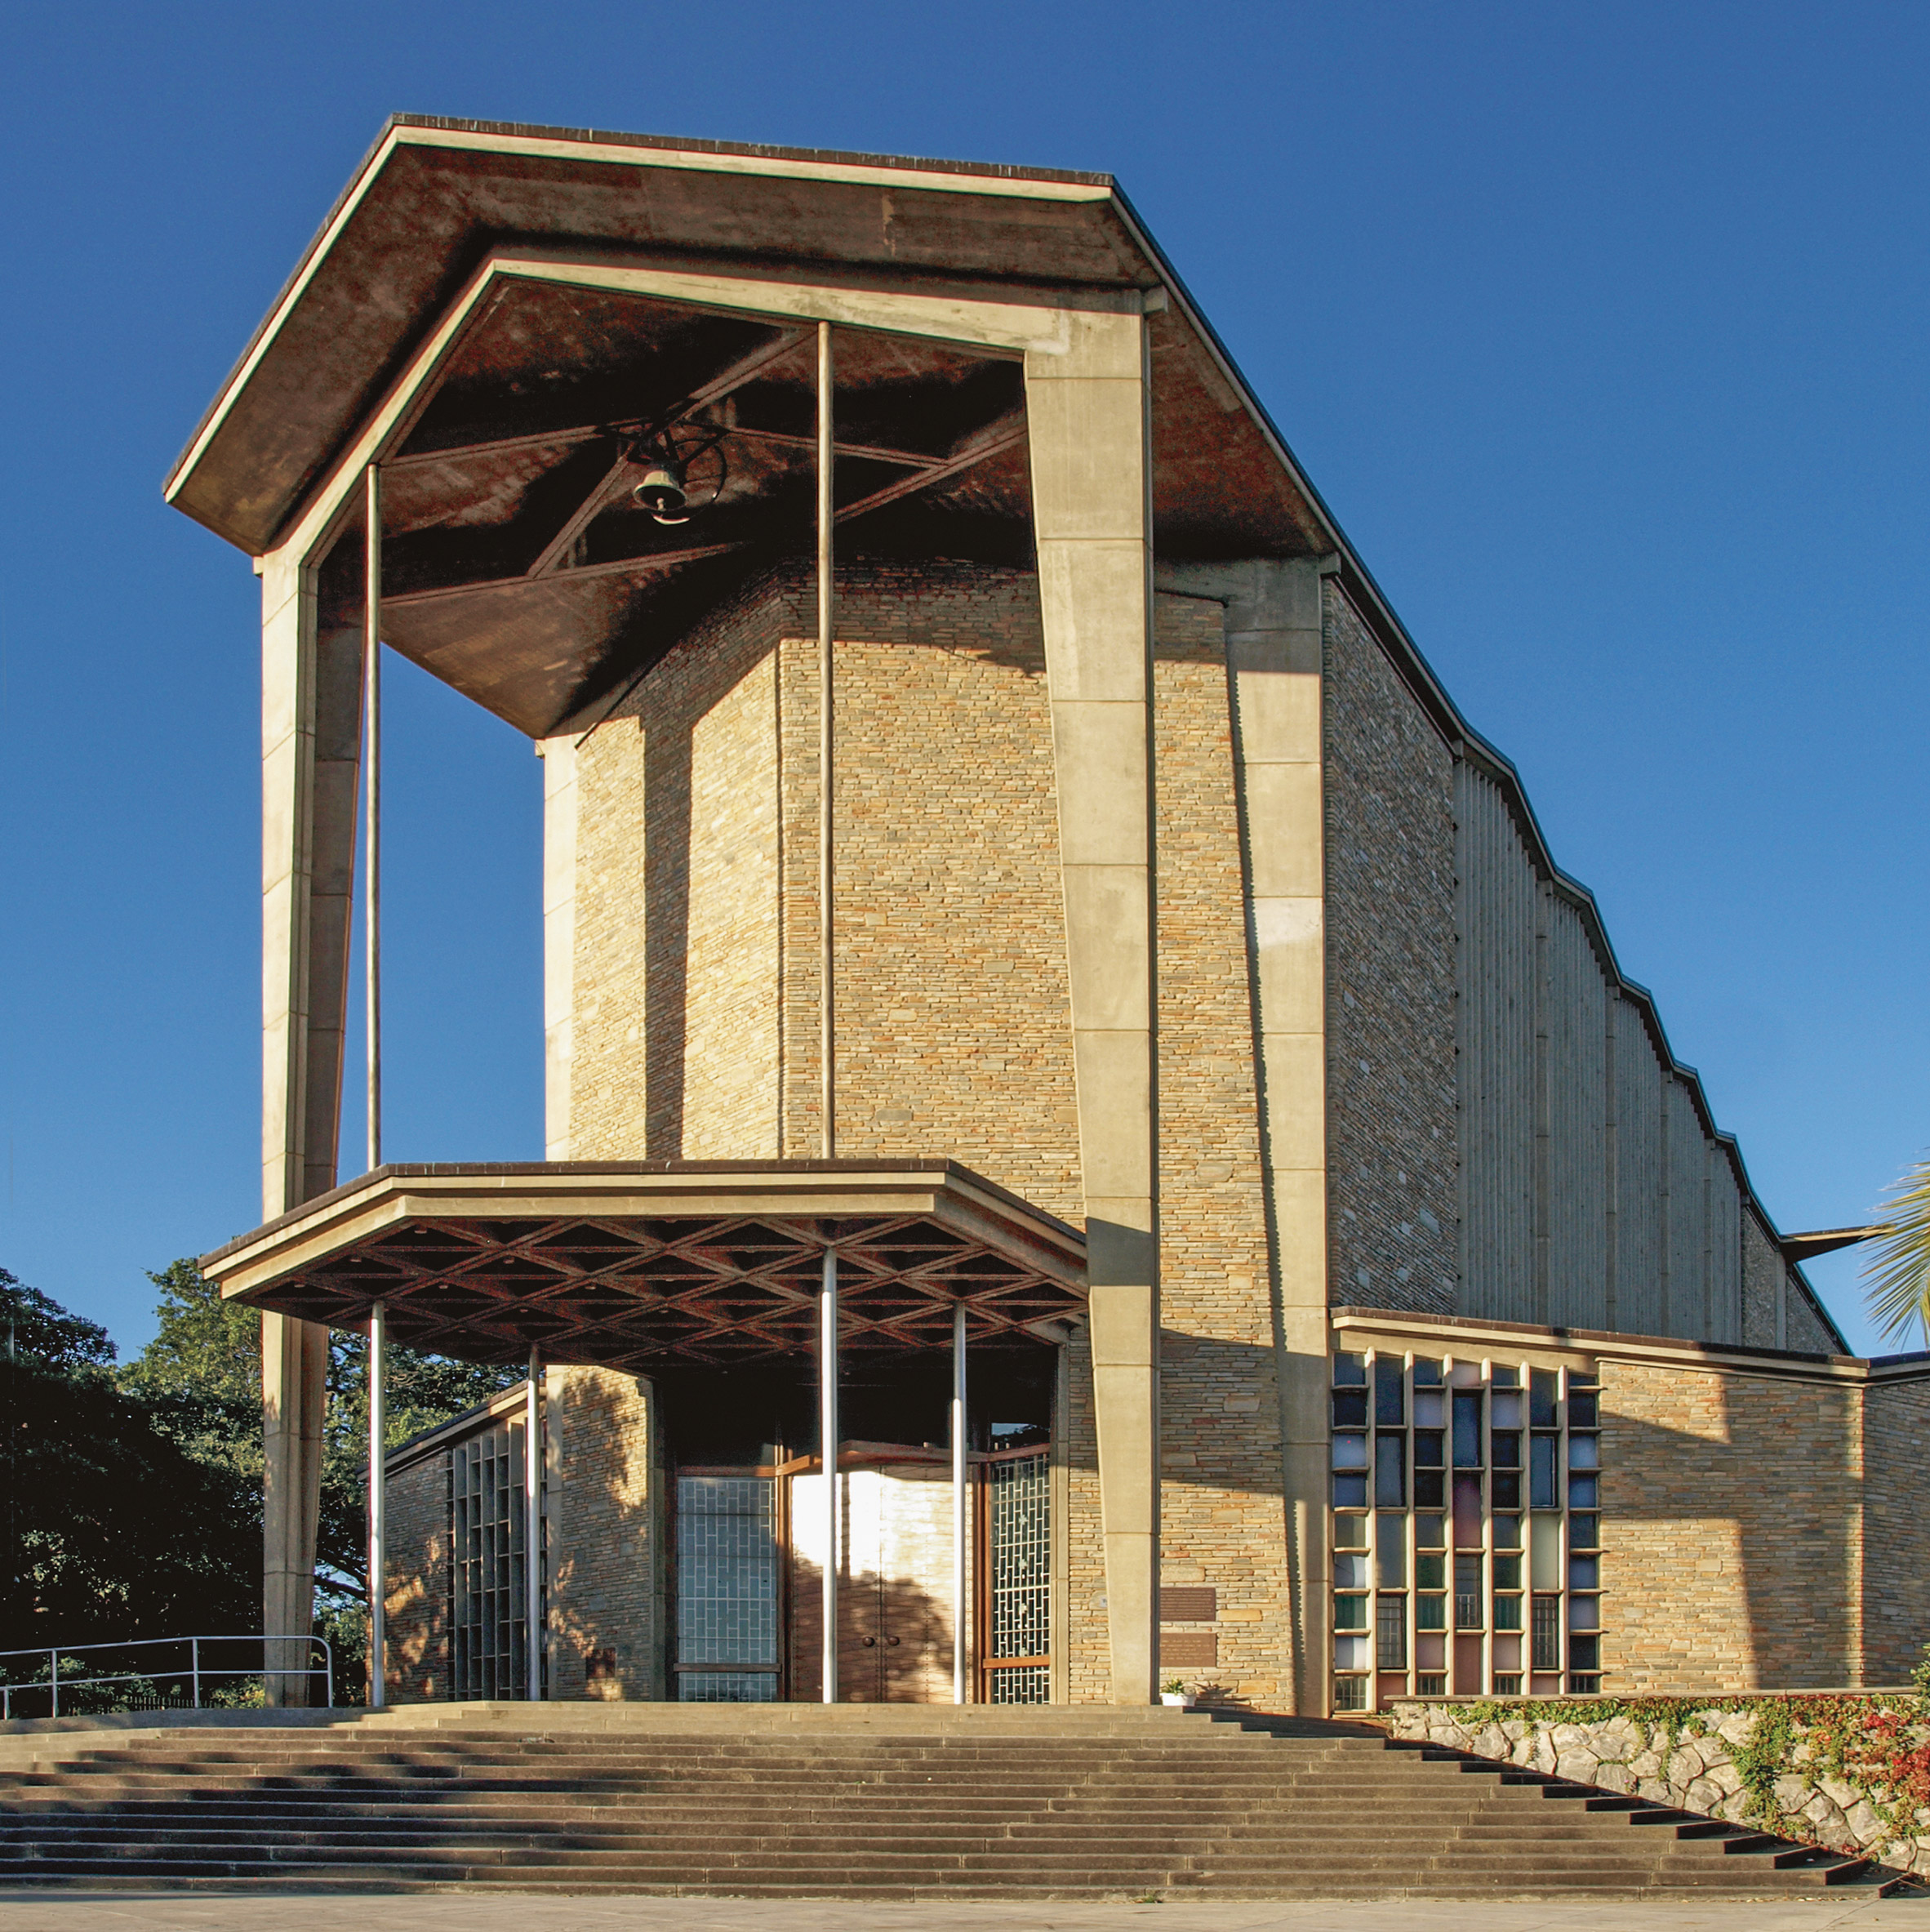 Cathedral of the Holy Cross, Lusaka, by Hope, Reeler & Morris⁄Ian Reeler